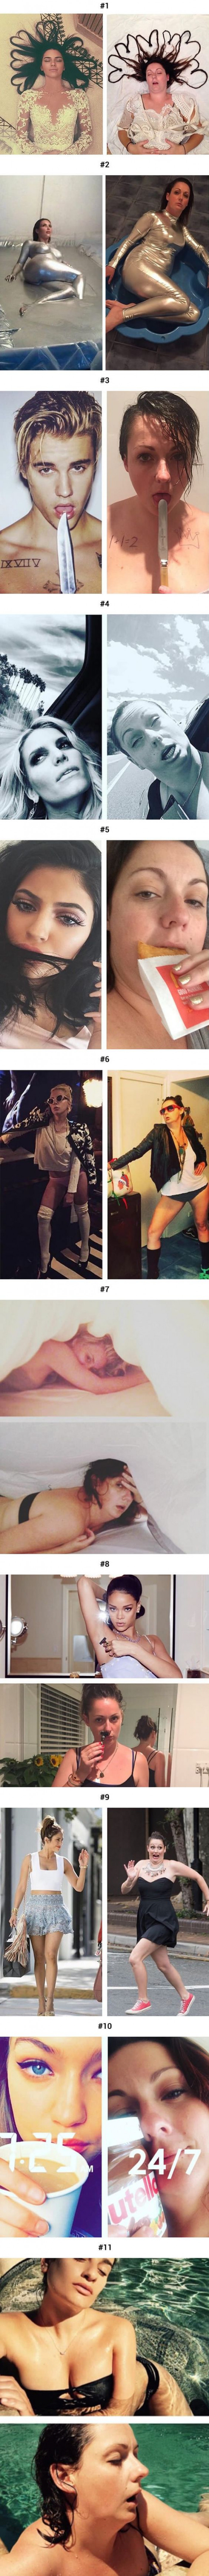 Women Mocks Celebs Instagram Posts